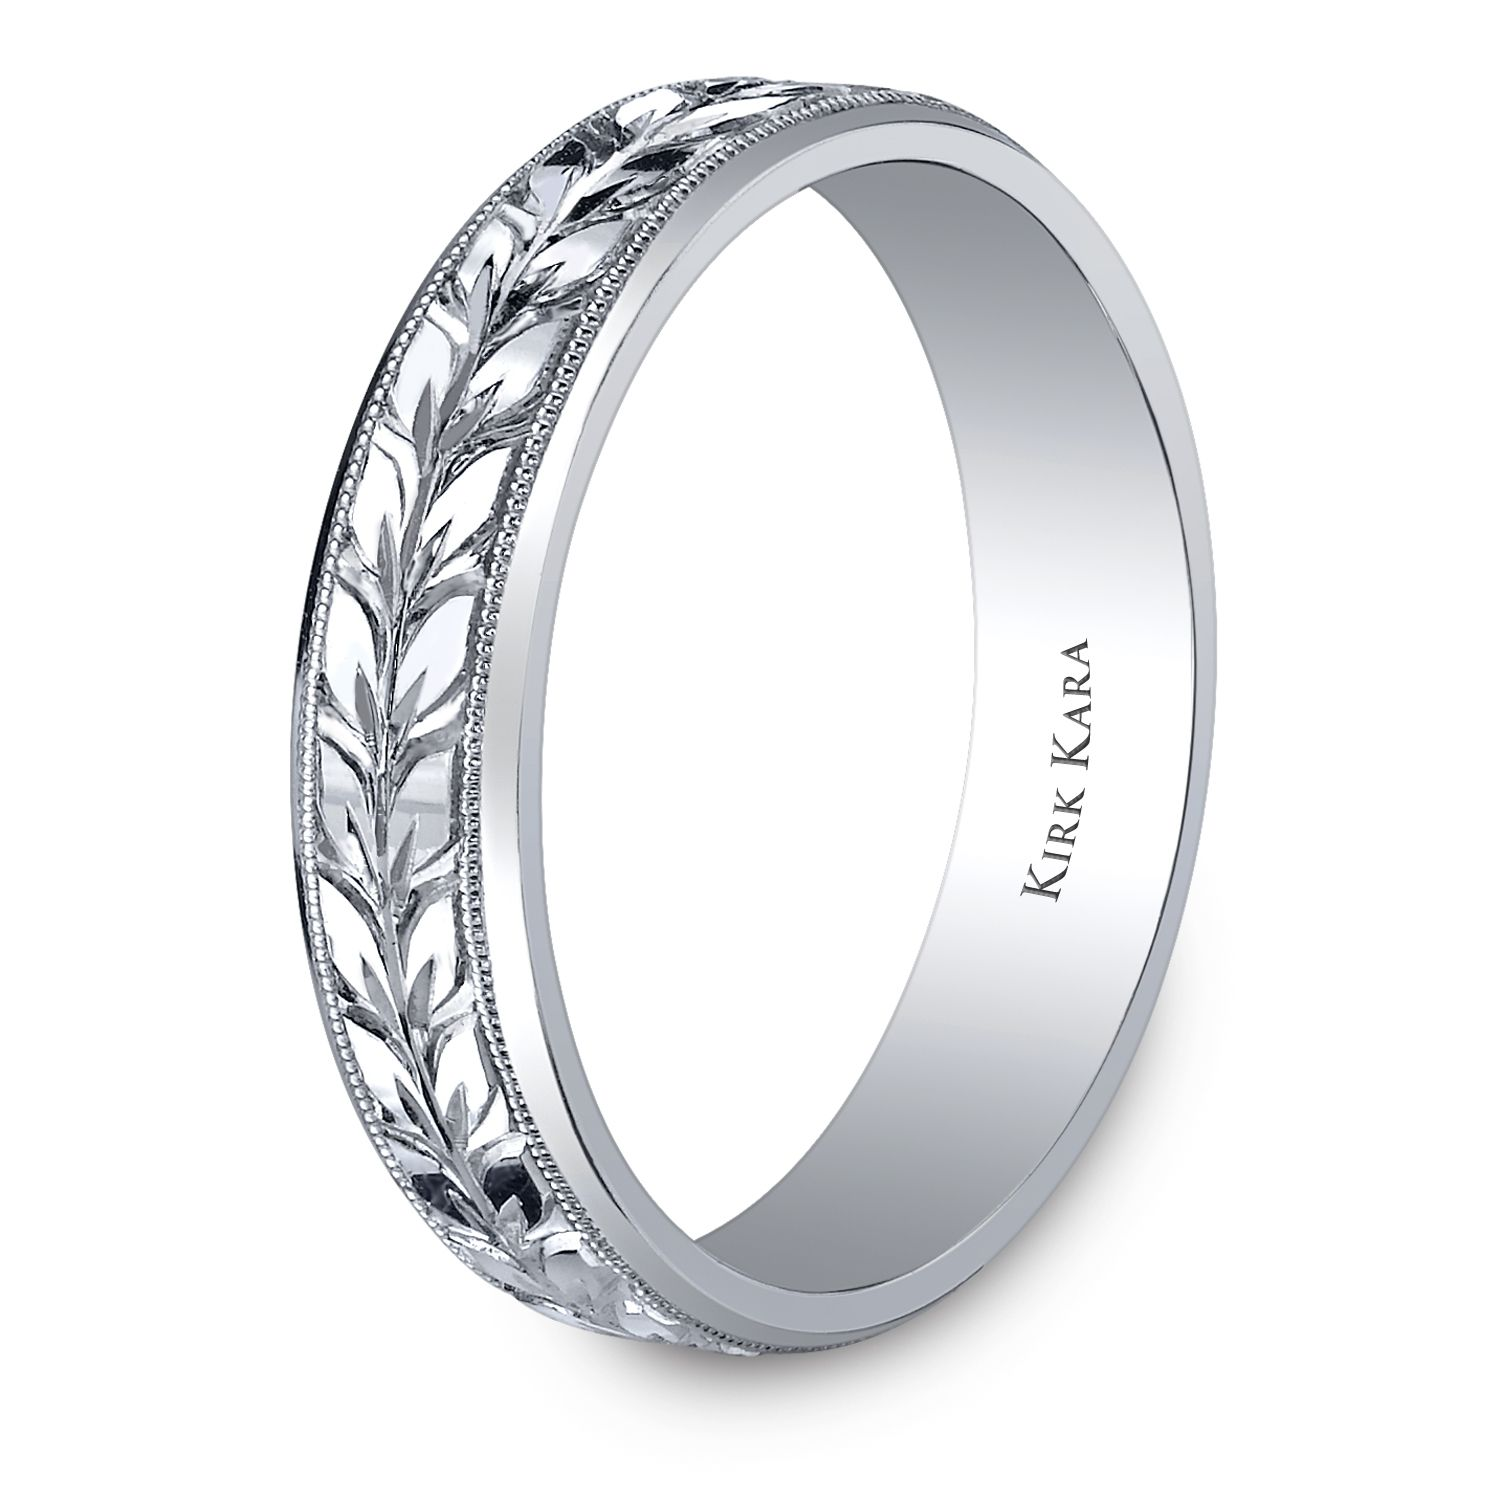 Supreme Comfort and everyday style, Mens wedding band with